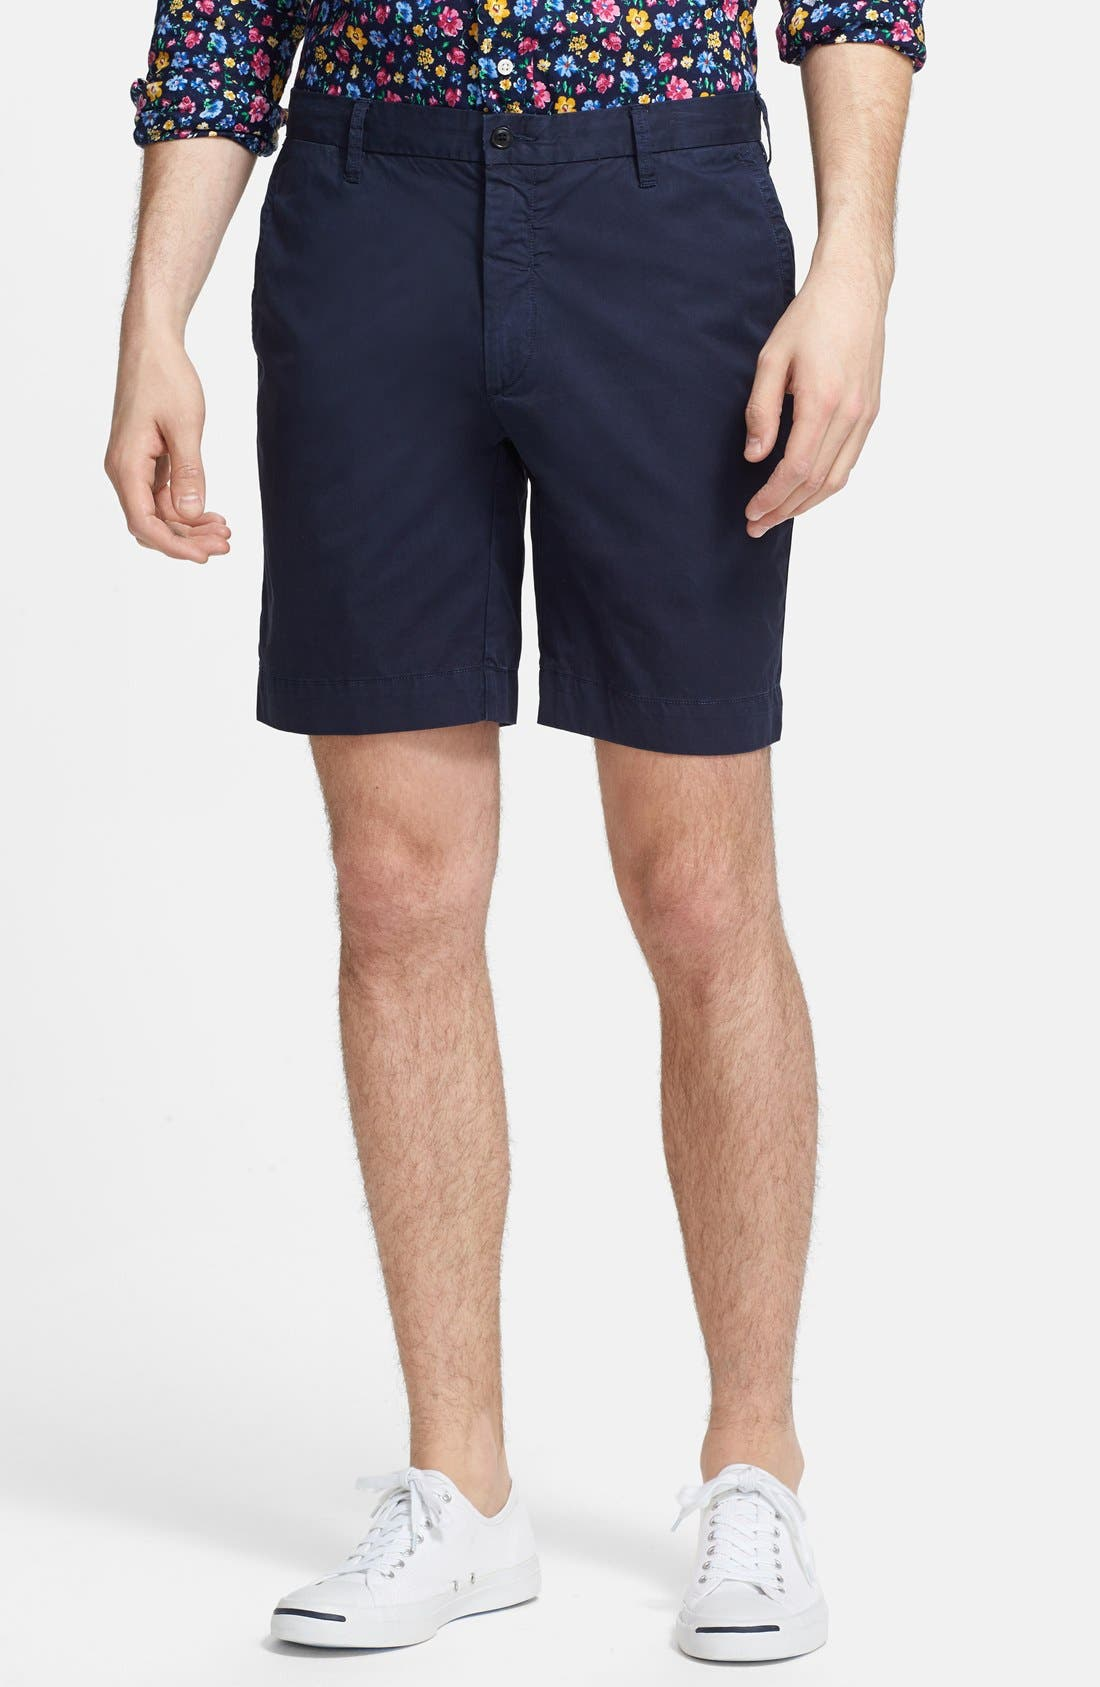 Main Image - Polo Ralph Lauren 'Hudson' Flat Front Classic Fit Chino Shorts